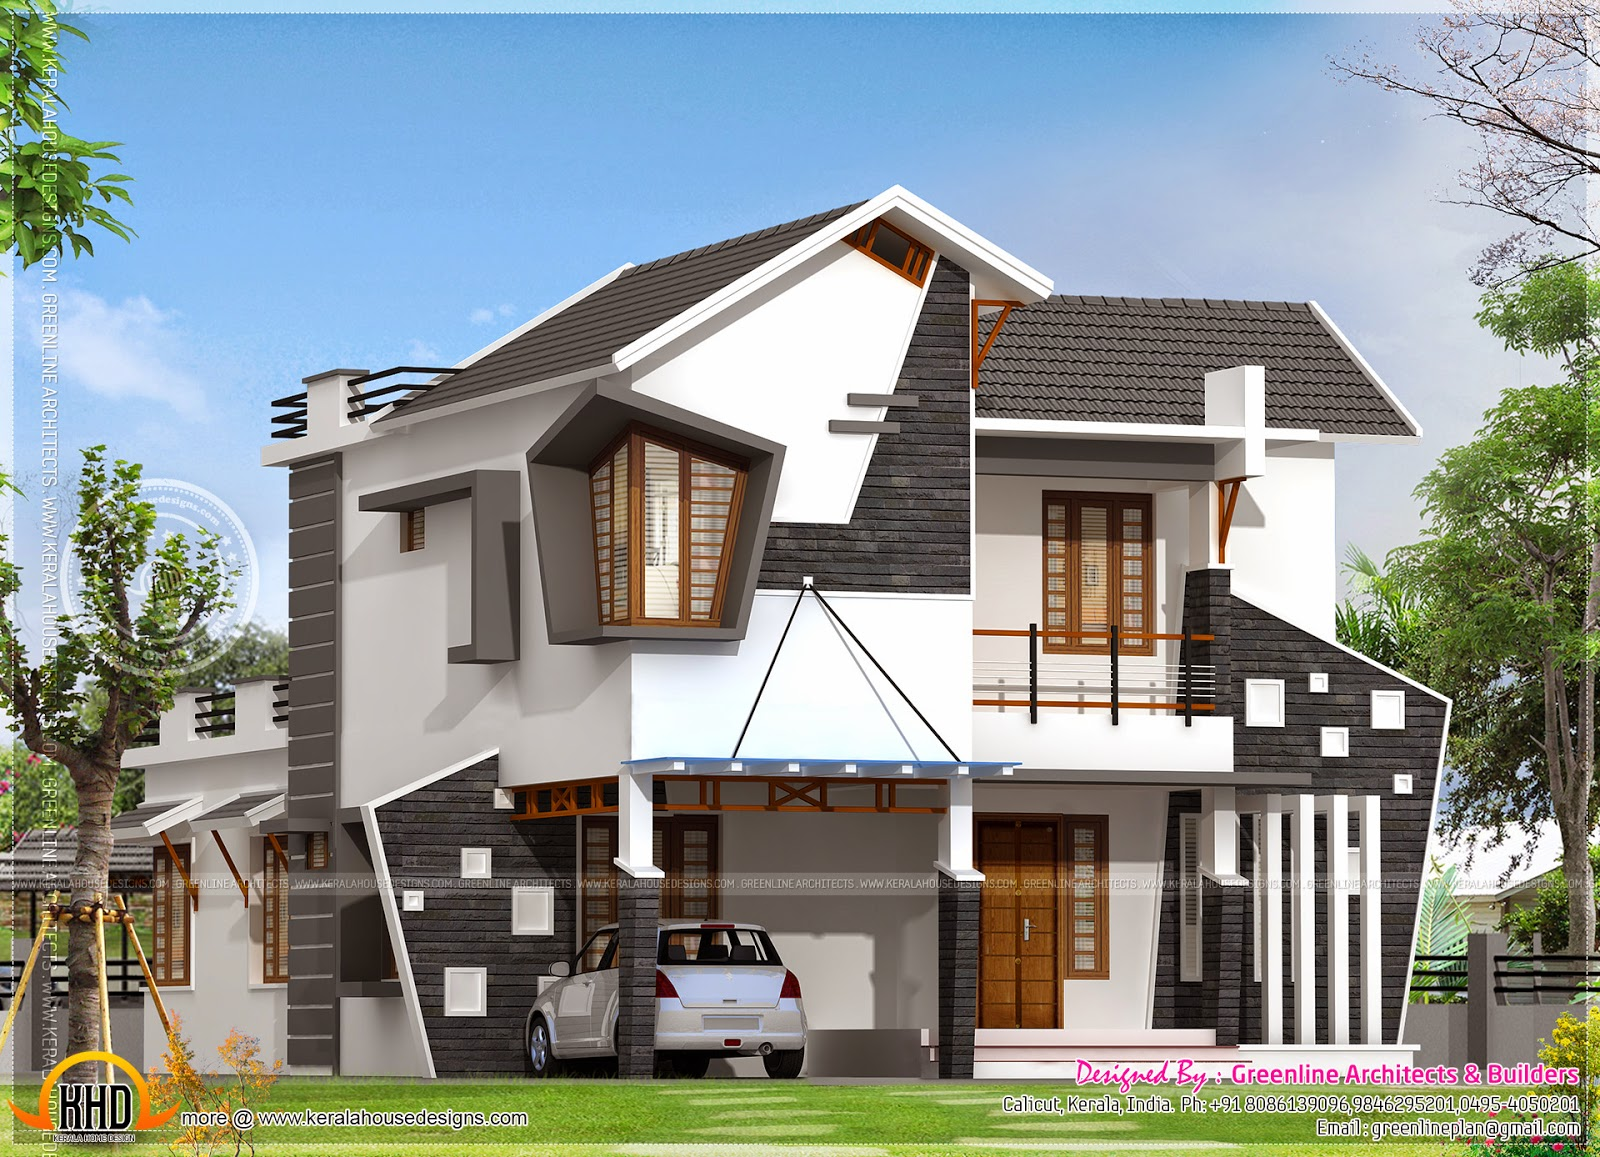 Beautiful home design flat roof style keralahousedesigns for Unique house exteriors